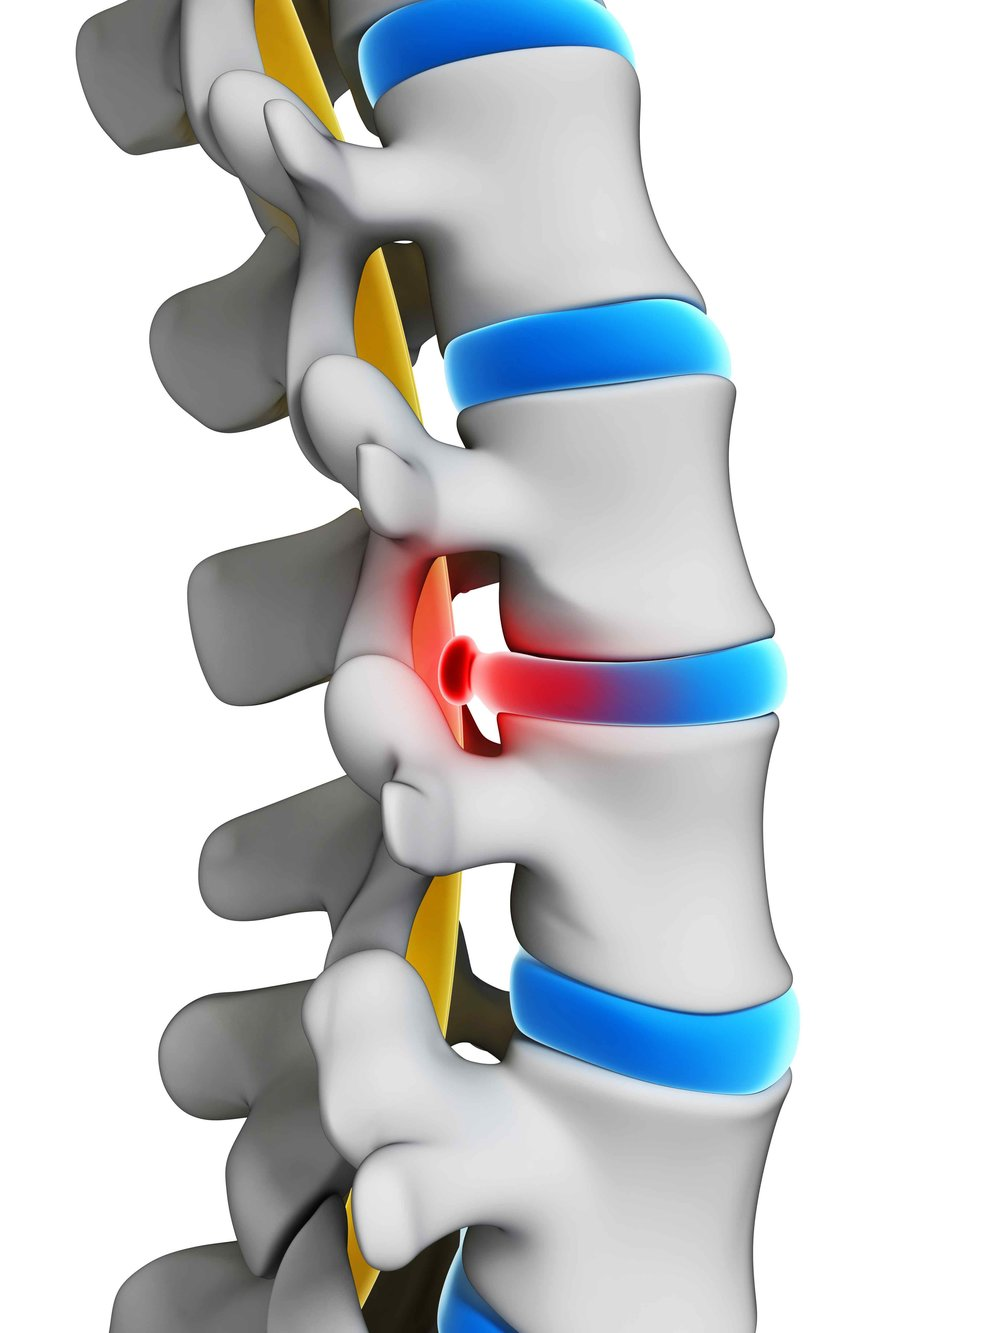 Herniated Disc - Herniated or ruptured discs can occur when the rubbery discs between the spinal bones (vertebrae) become compressed and bulge outward or rupture (herniation), causing back pain, leg pain and sciatica. This condition is commonly treated with Epidural Steroid Injection (ESI). In certain severe cases, part of the disc may need to be cut-out, a procedure known as Discectomy.